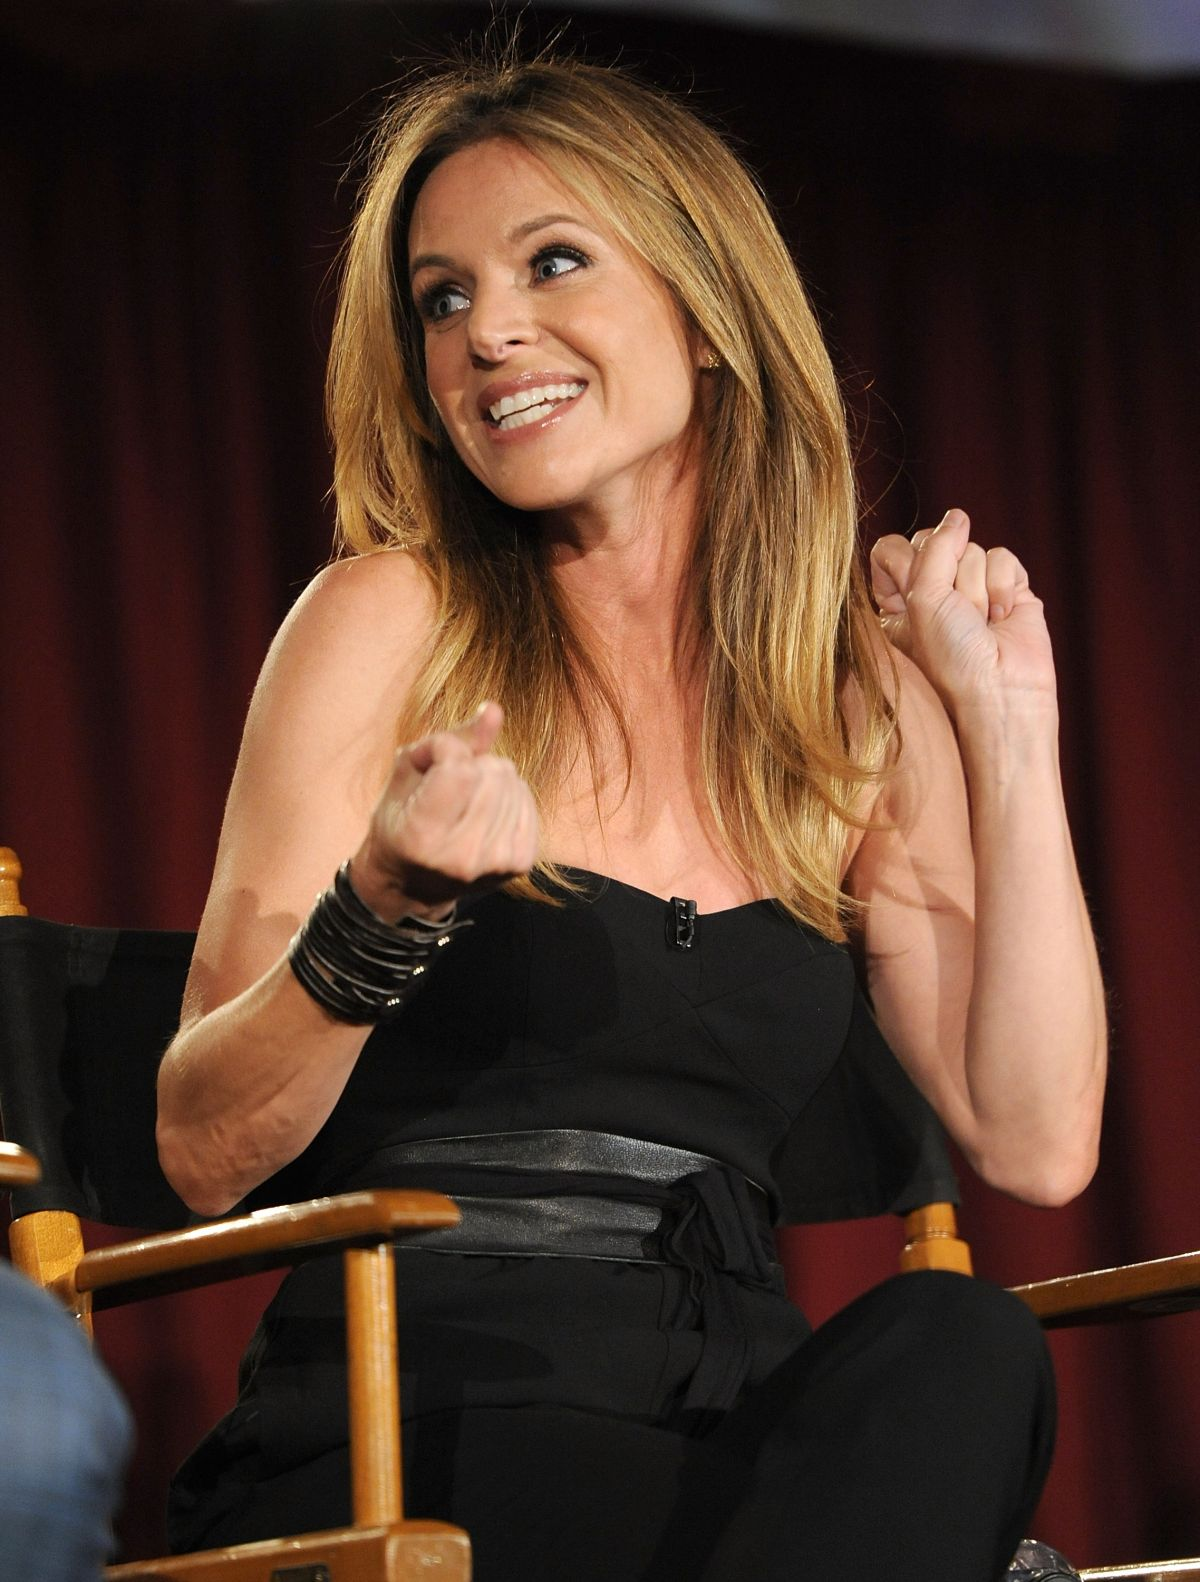 jessalyn gilsig imdbjessalyn gilsig movies and tv shows, jessalyn gilsig net worth, jessalyn gilsig insta, jessalyn gilsig surgery, jessalyn gilsig instagram, jessalyn gilsig vikings, jessalyn gilsig prison break, jessalyn gilsig the good wife, jessalyn gilsig twitter, jessalyn gilsig fotos, jessalyn gilsig fansite, jessalyn gilsig, jessalyn gilsig glee, jessalyn gilsig facebook, jessalyn gilsig maxim, jessalyn gilsig imdb, jessalyn gilsig nudography, jessalyn gilsig measurements